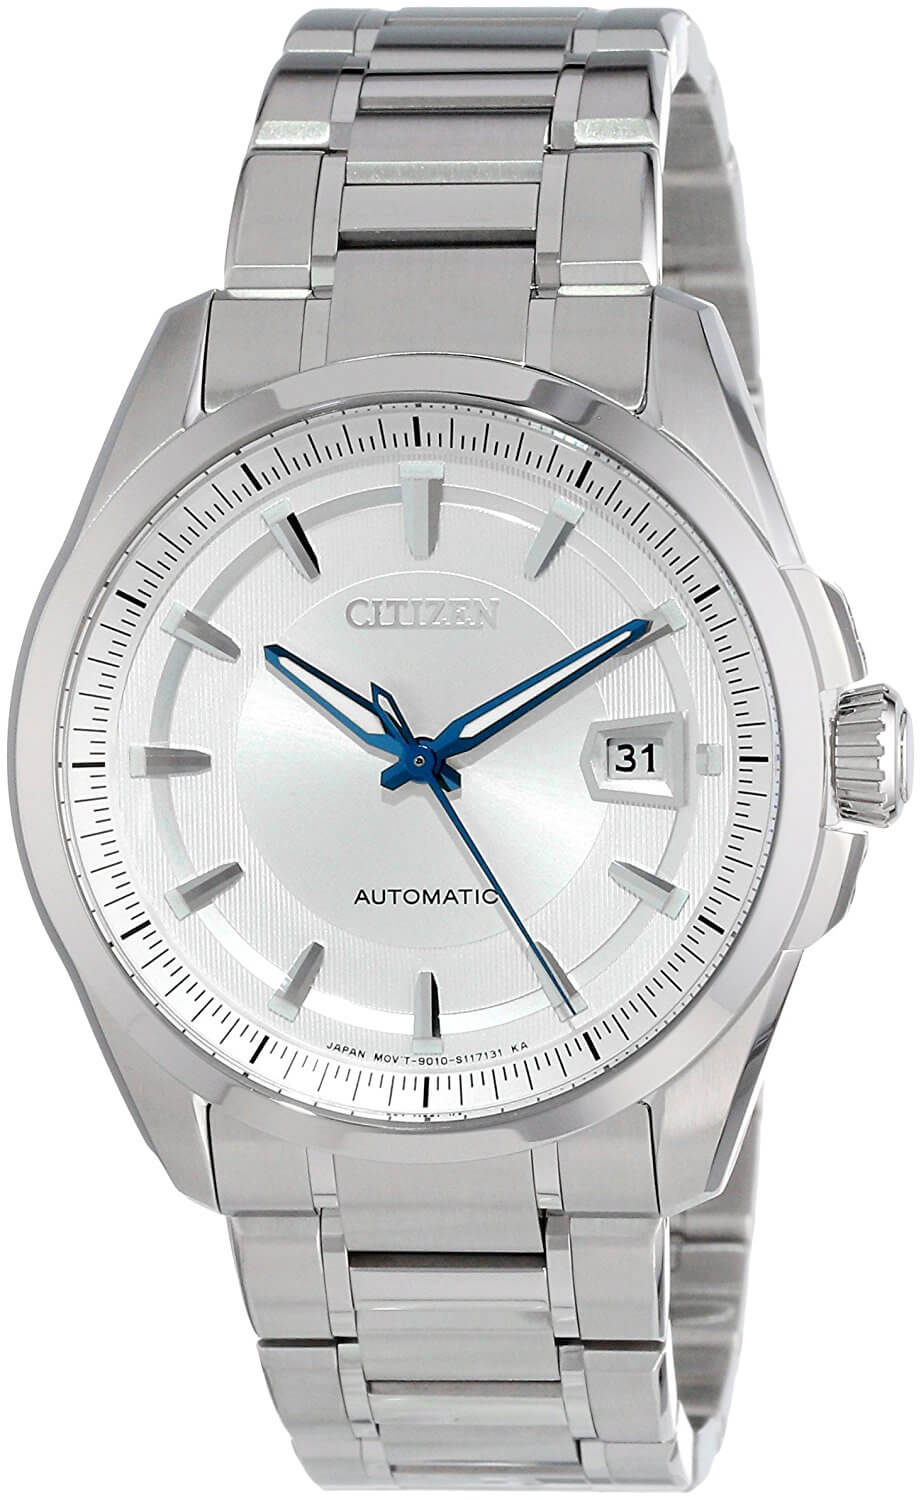 B10 Citizen Grand Classic NB0040-58A